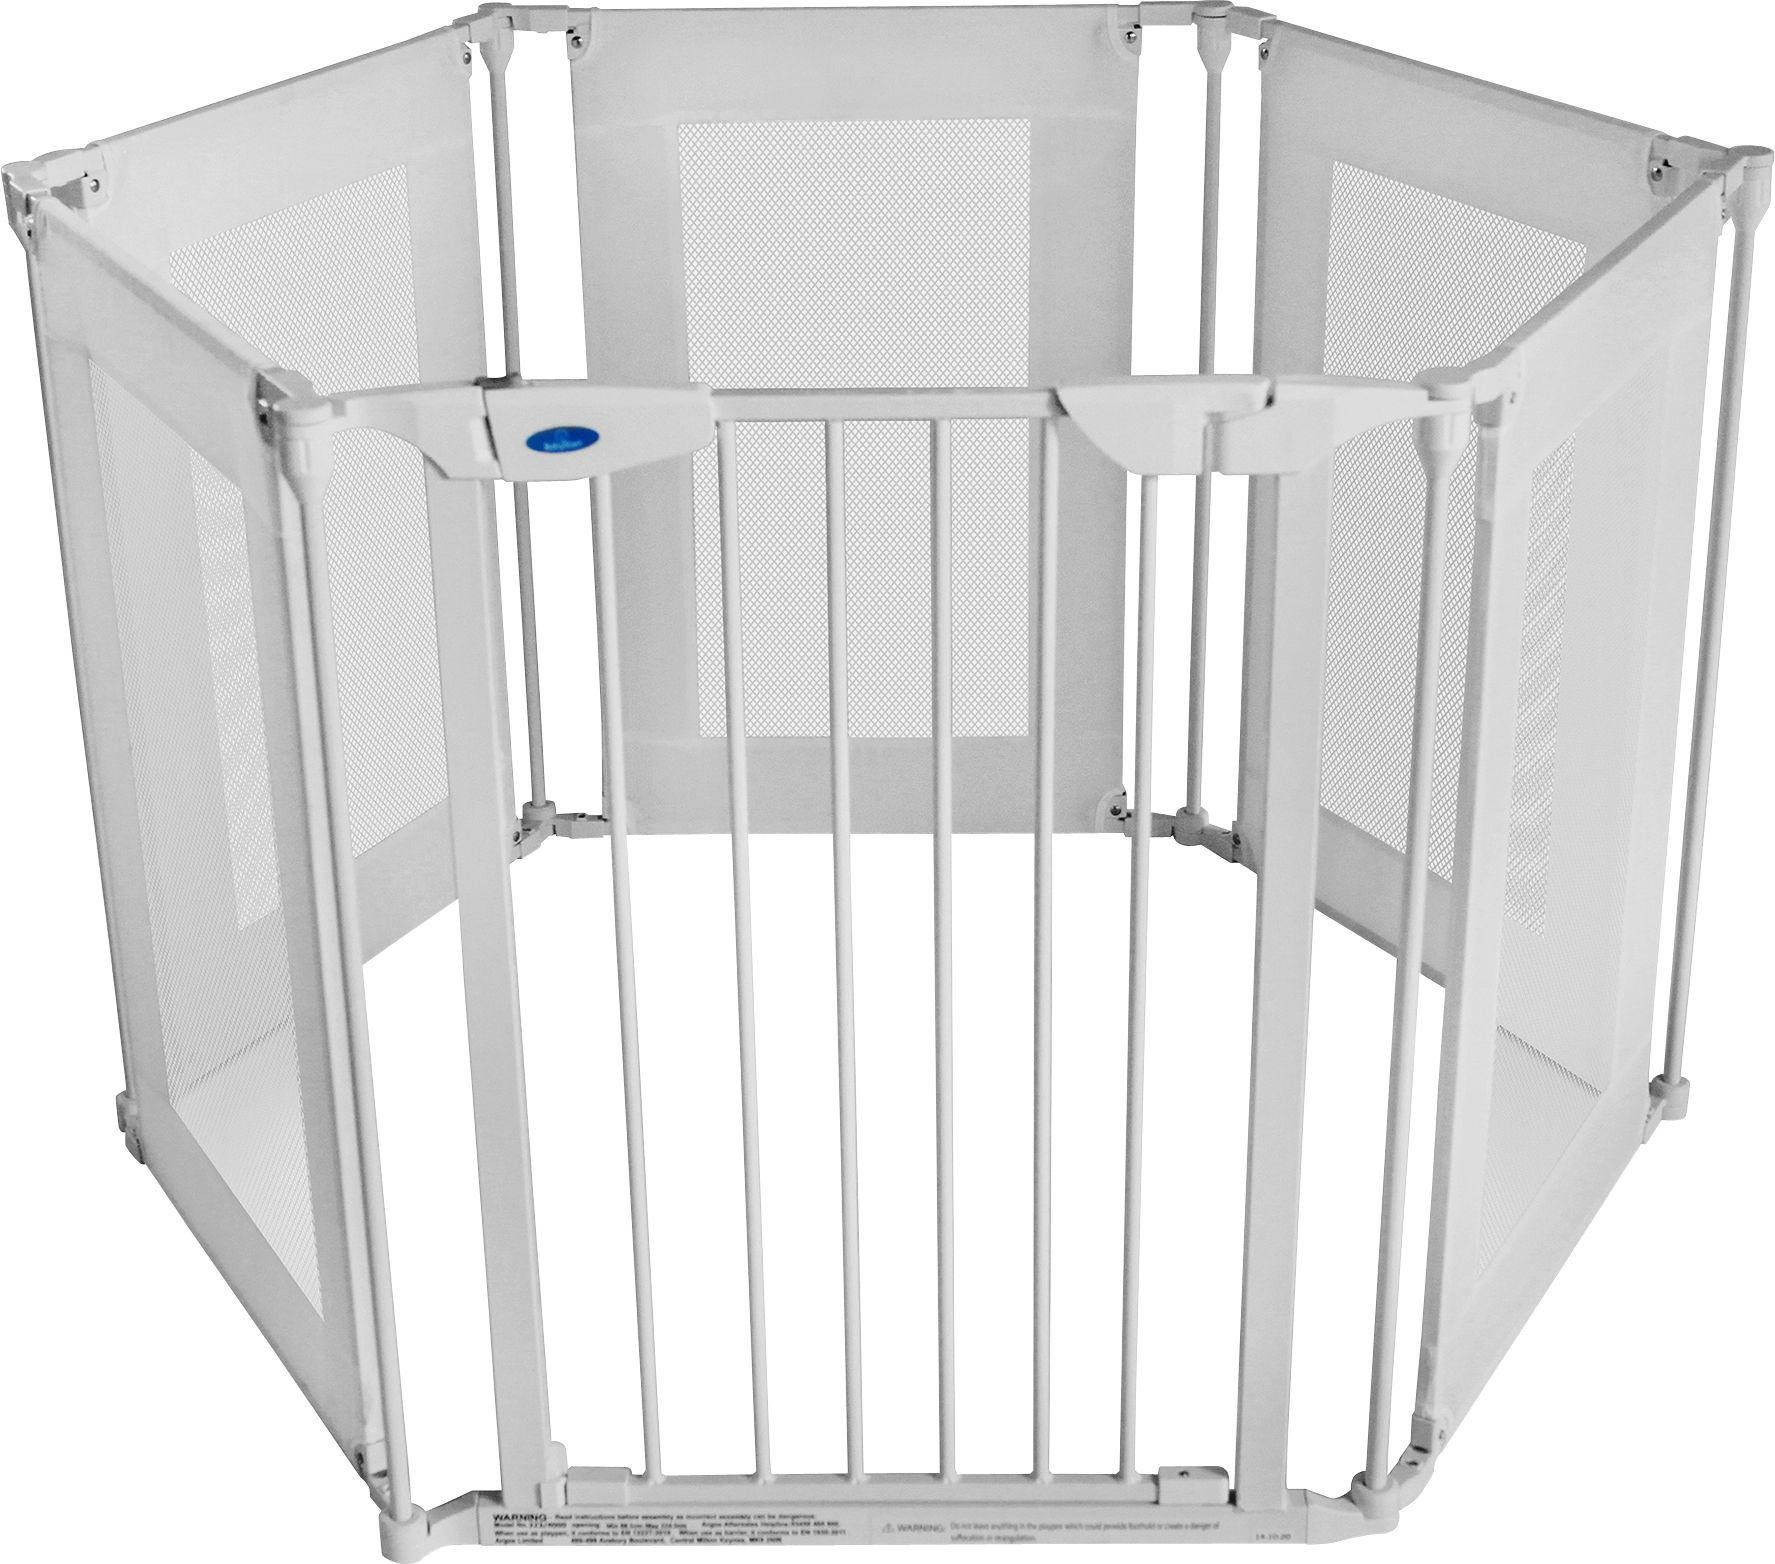 Image of BabyStart Metal and Fabric Playpen.